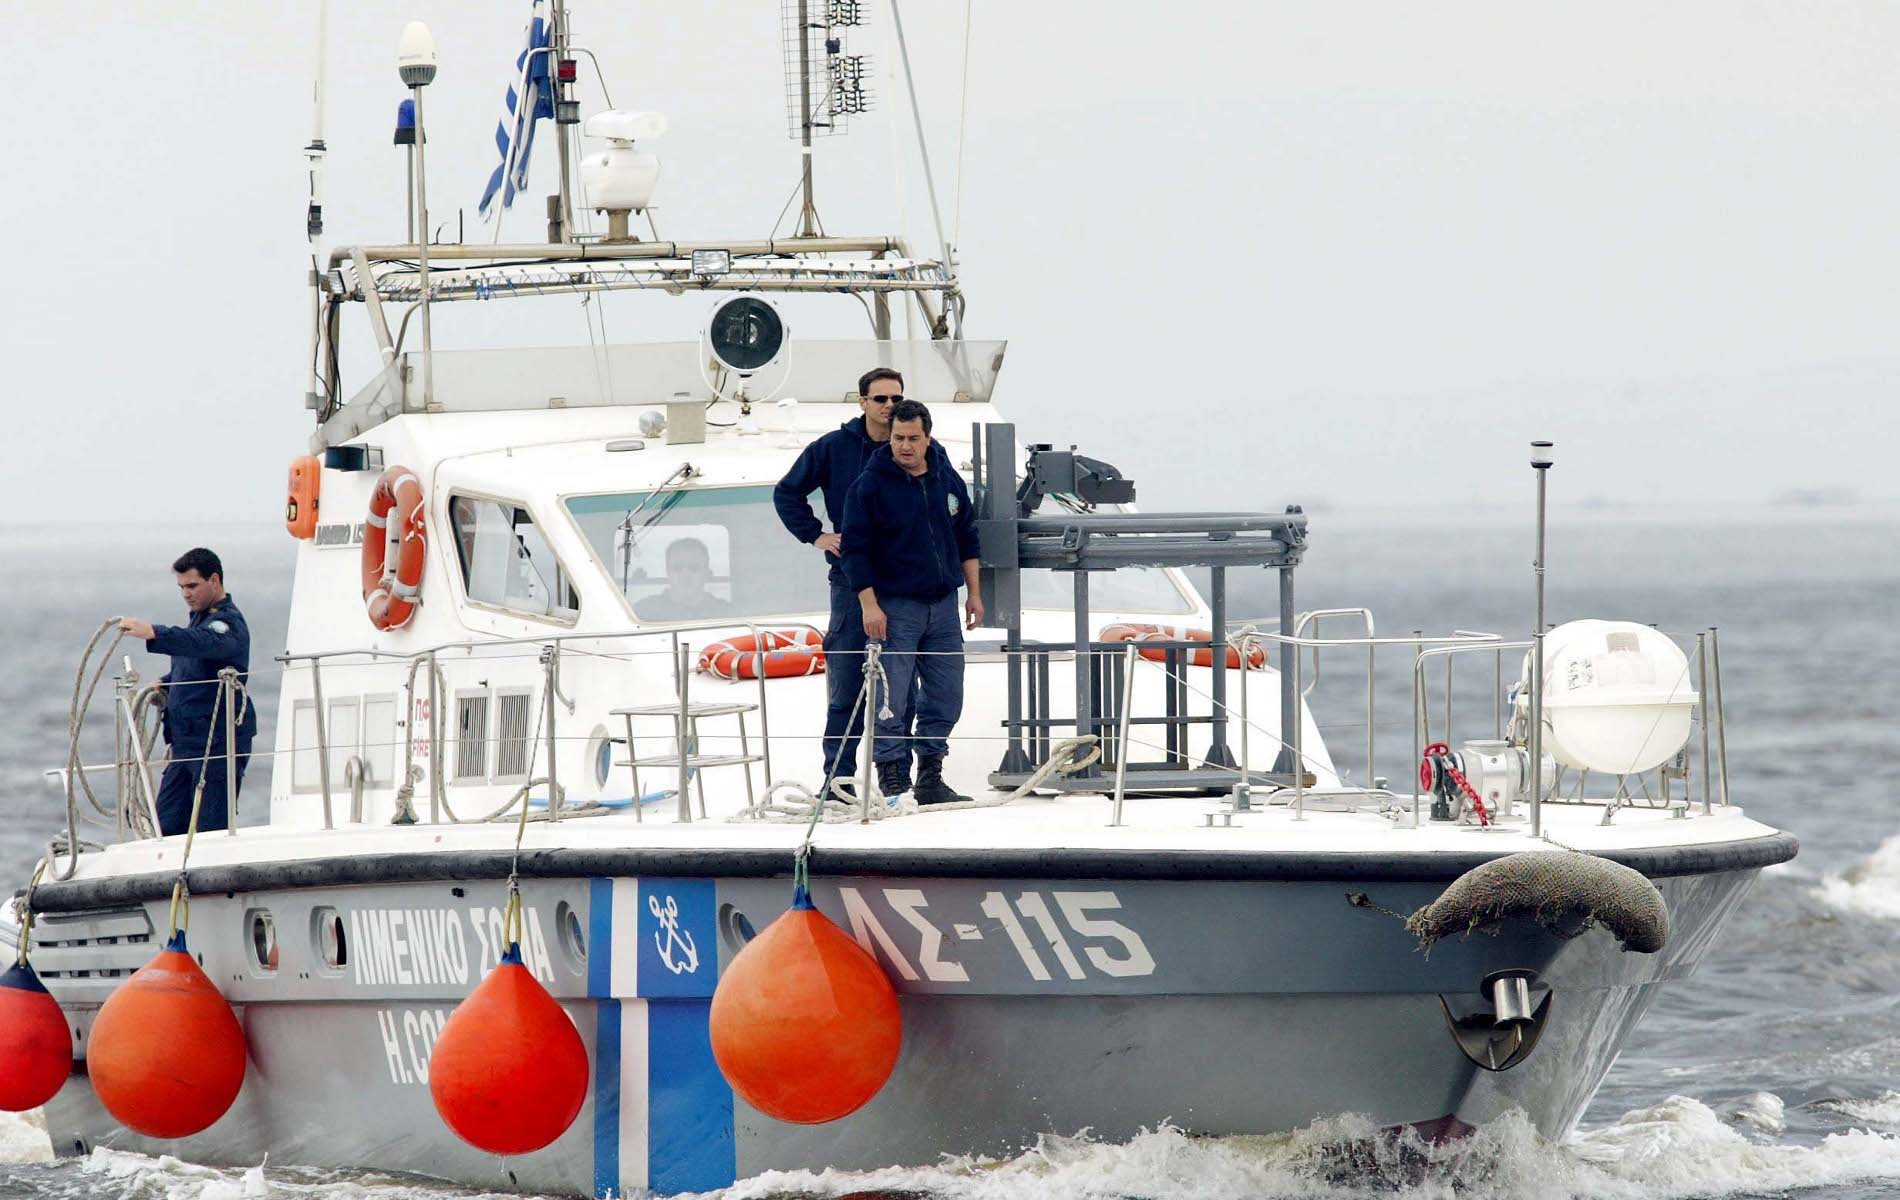 Coast Guard denies the apprehension of individual for being affiliated with ISIS